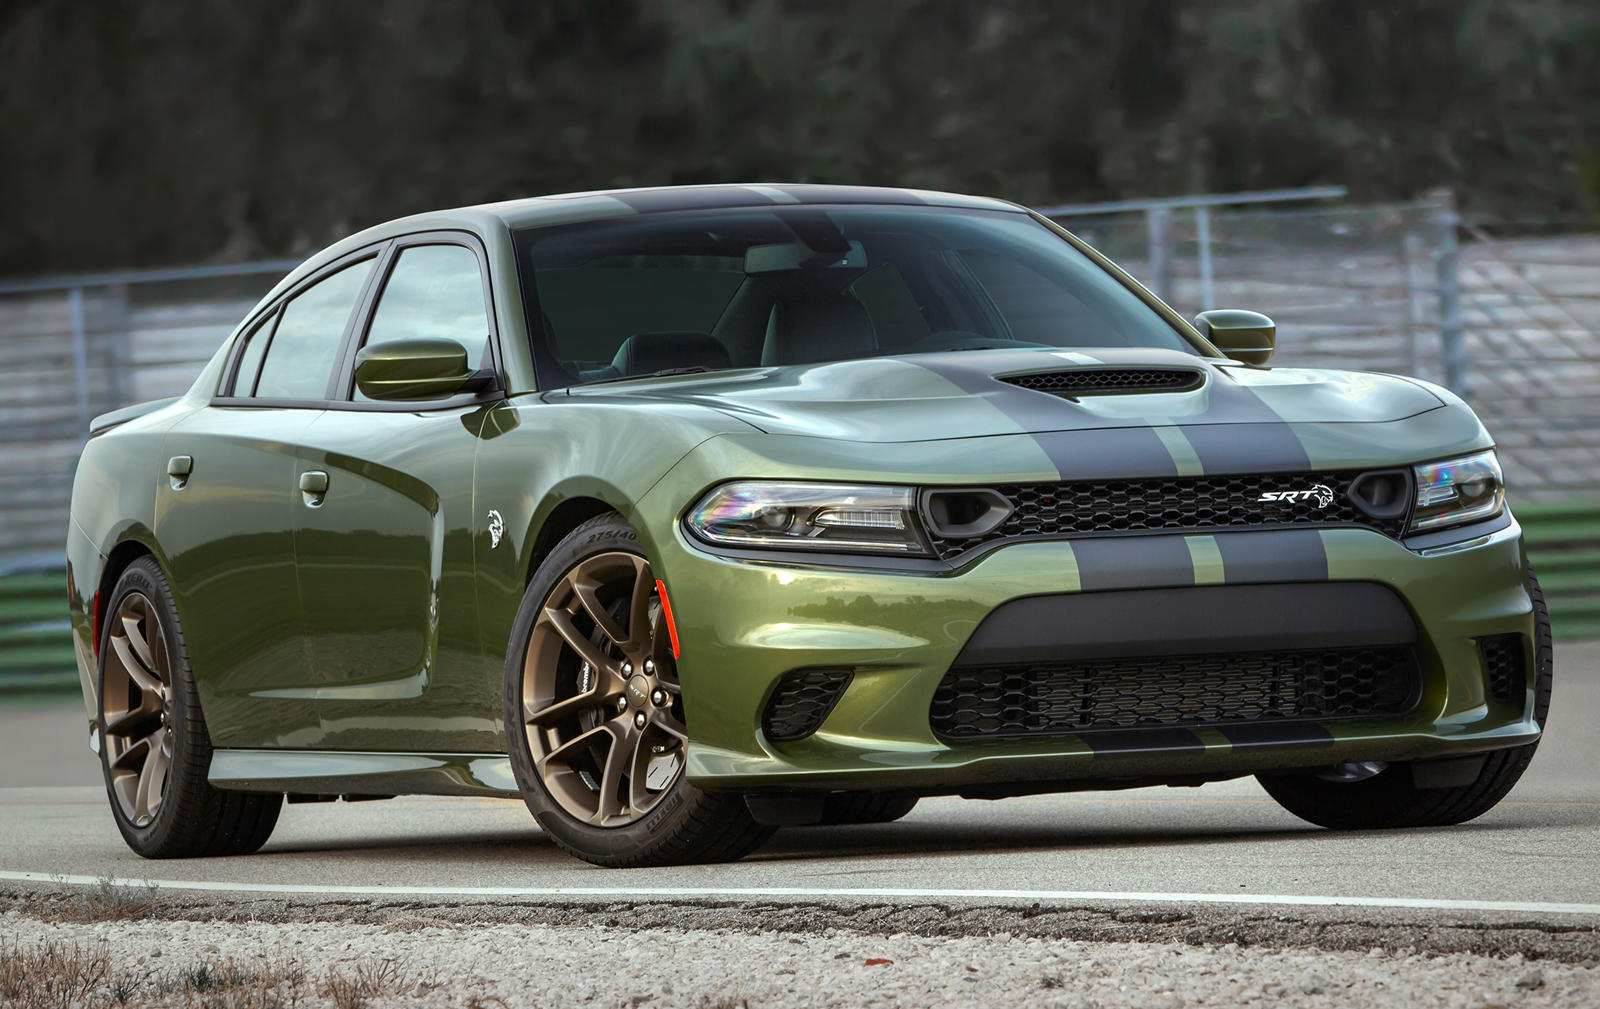 62 New Dodge News 2020 Specs